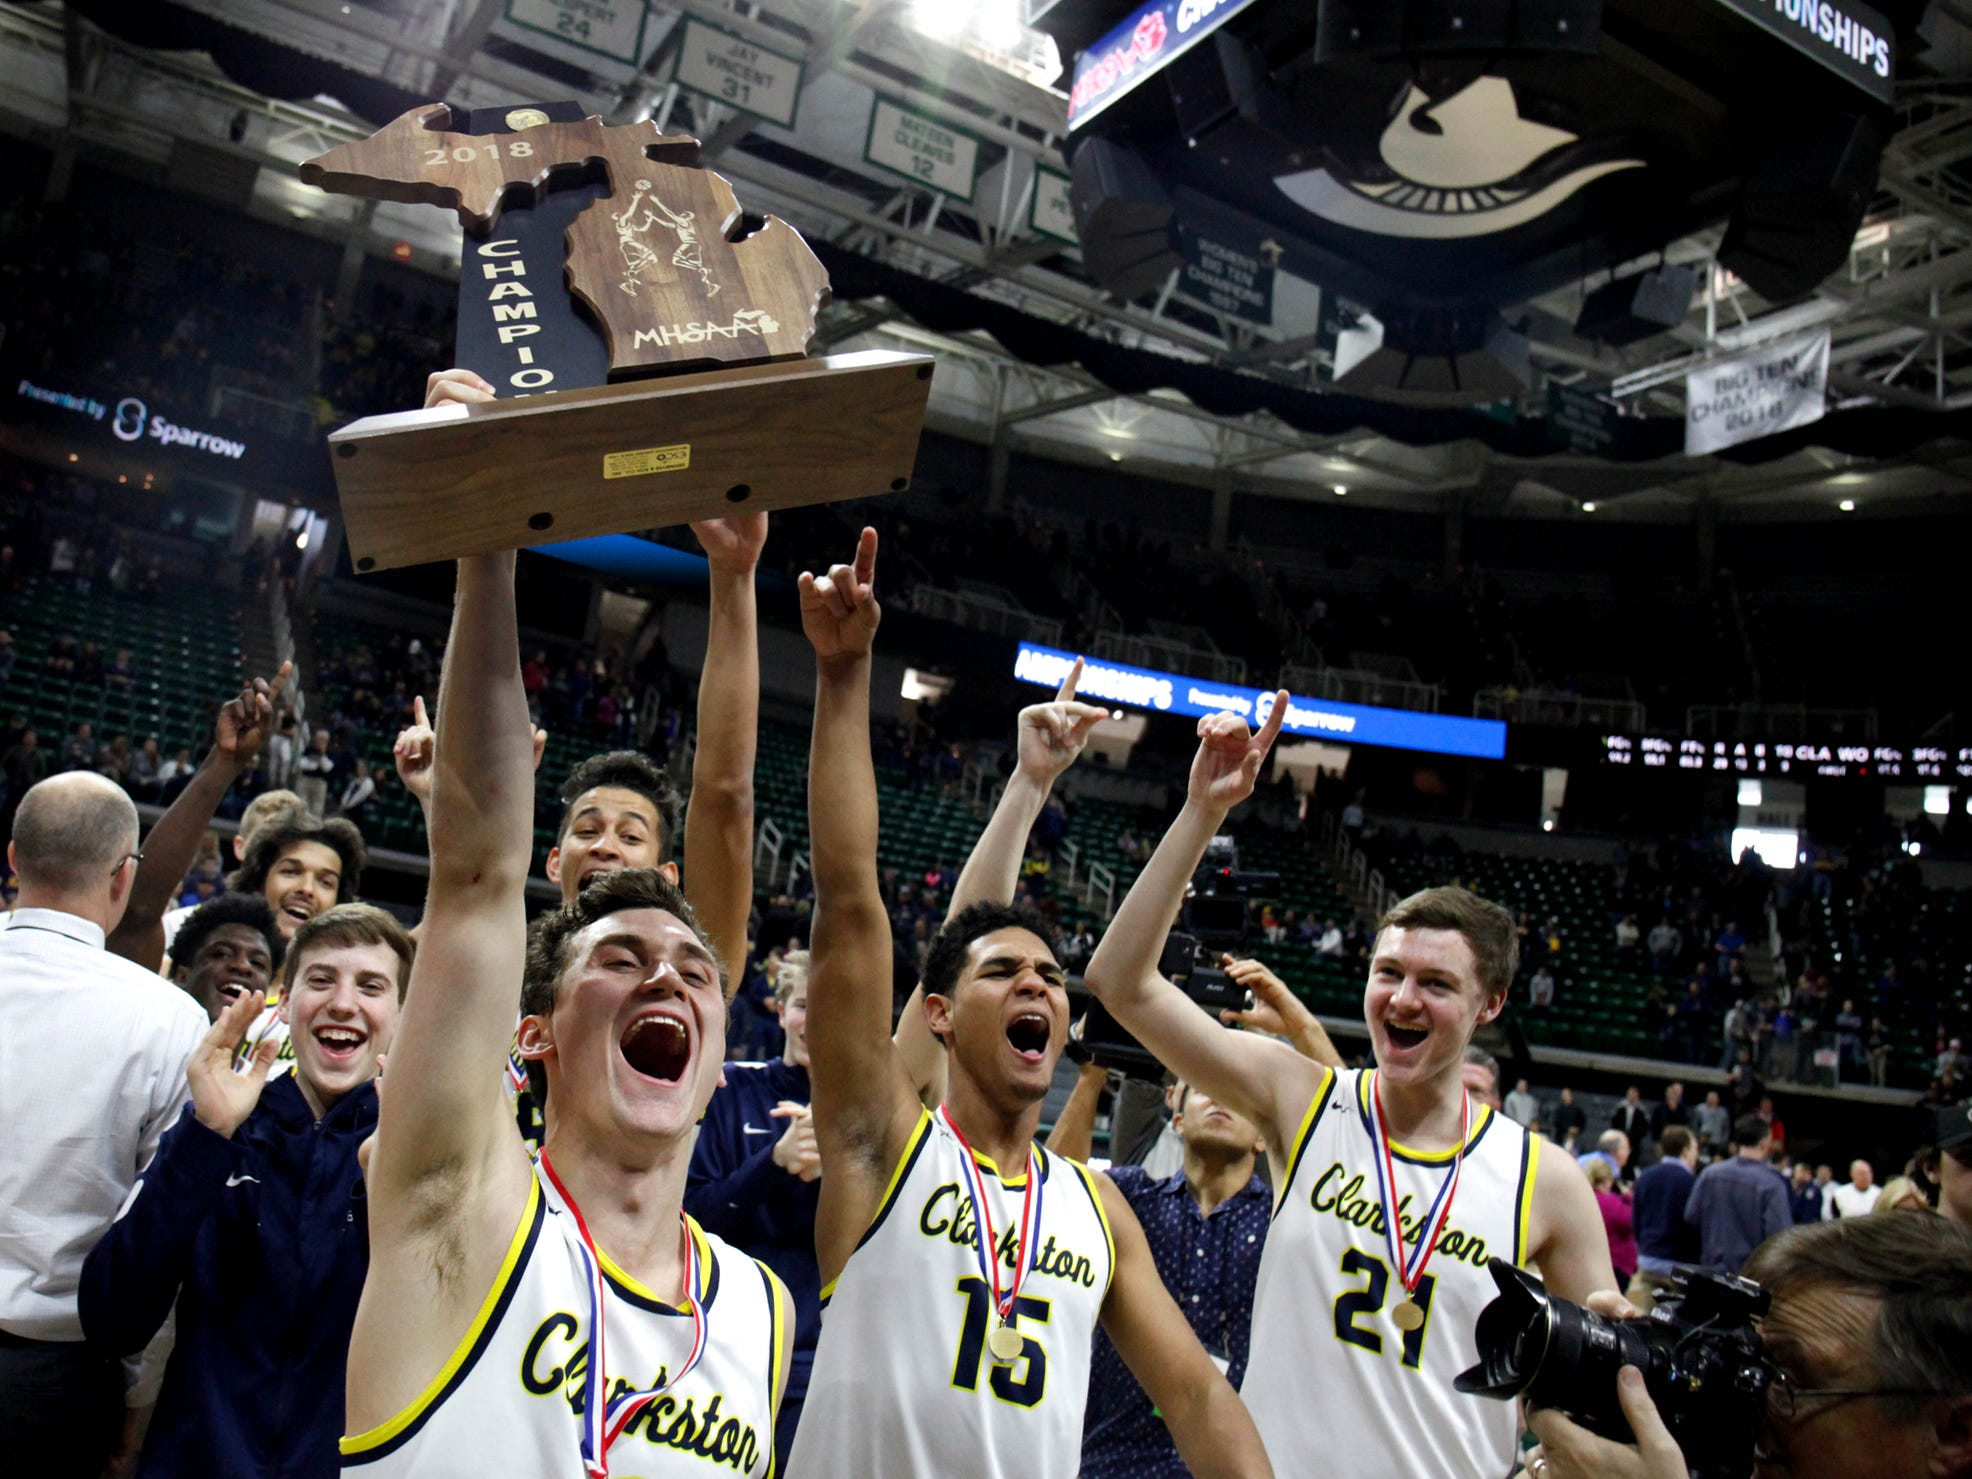 Clarkston guard Foster Loyer and his teammates celebrate the 81-38 win against Holland West Ottawa in the Class A MHSAA Championship Saturday, March 24, 2018, at the Breslin Center in East Lansing MI.